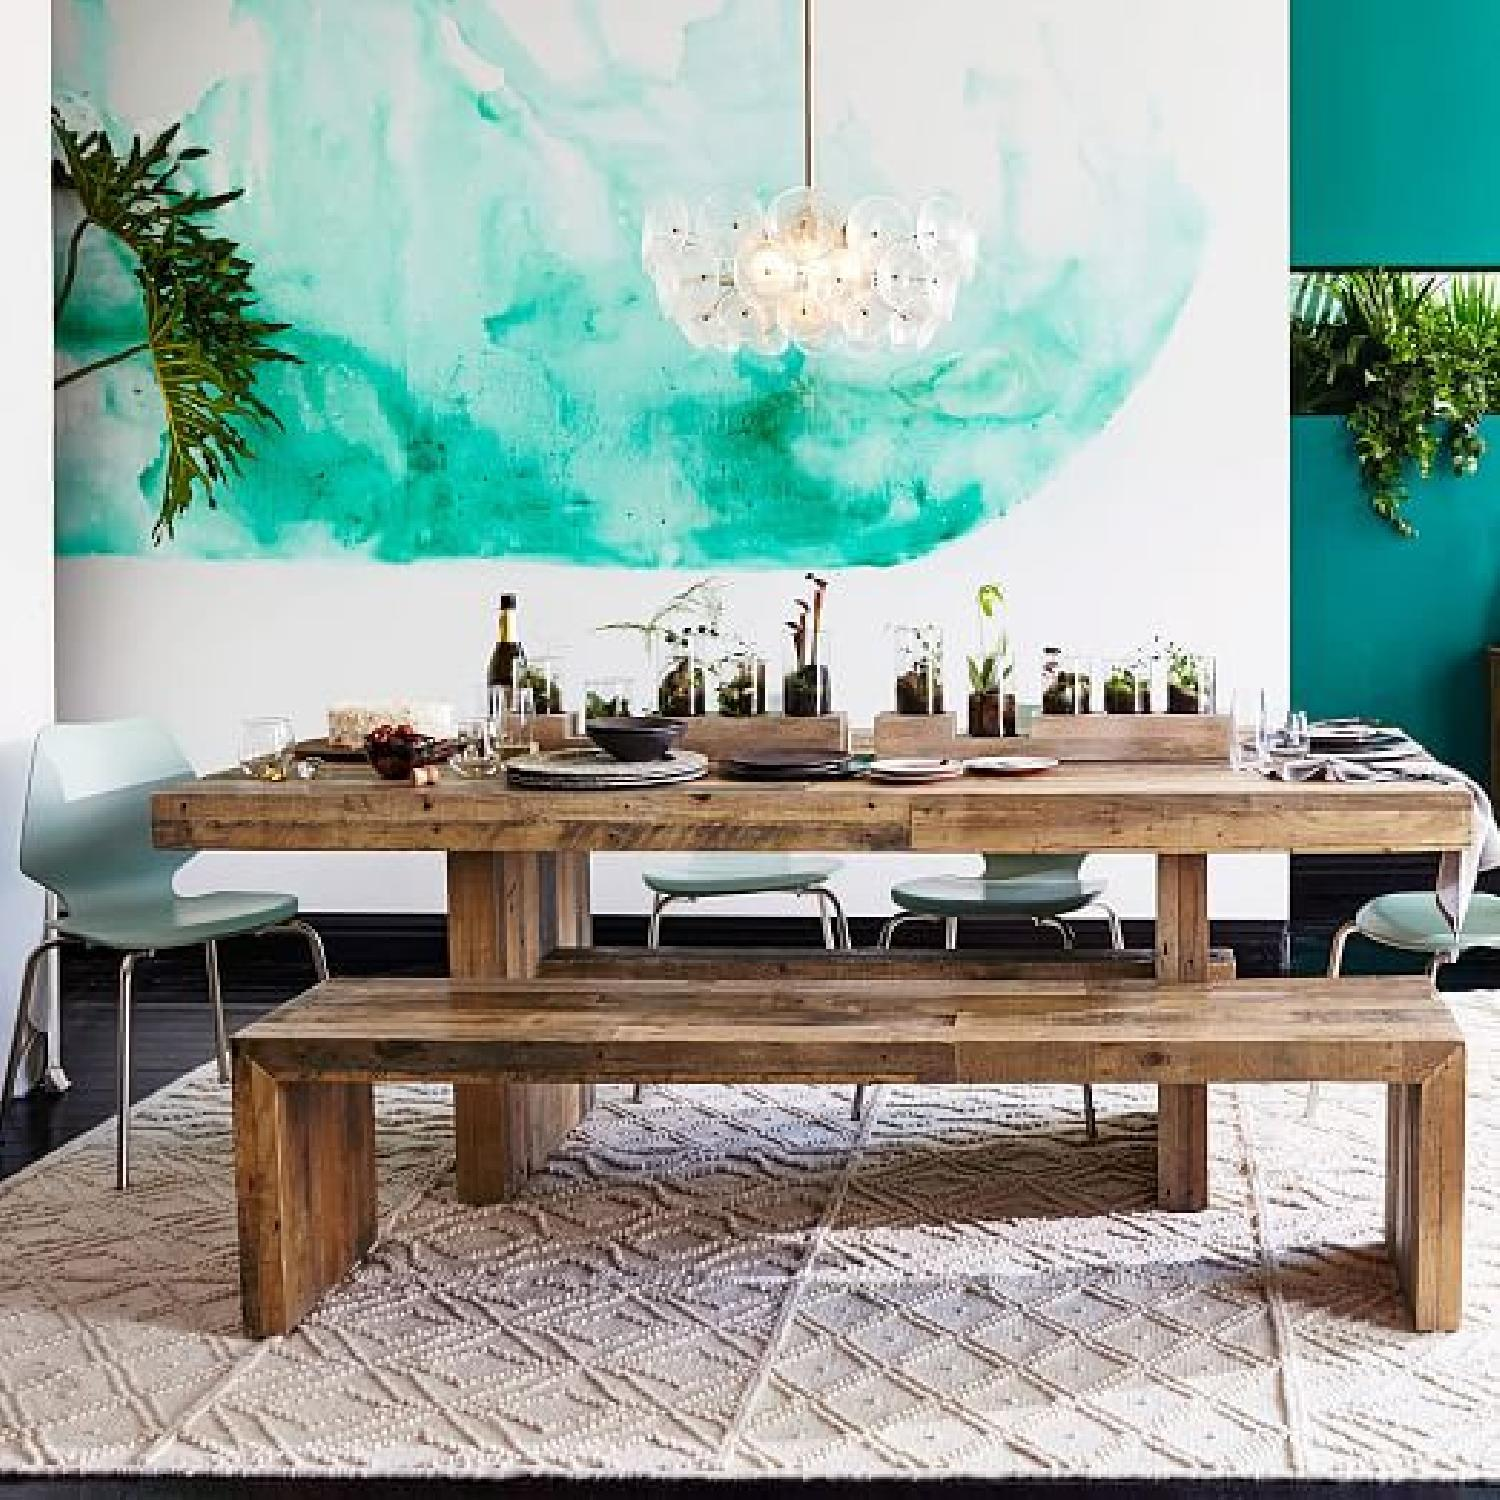 West Elm Reclaimed Pine Emmerson 72 Table and 58 Bench - image-0